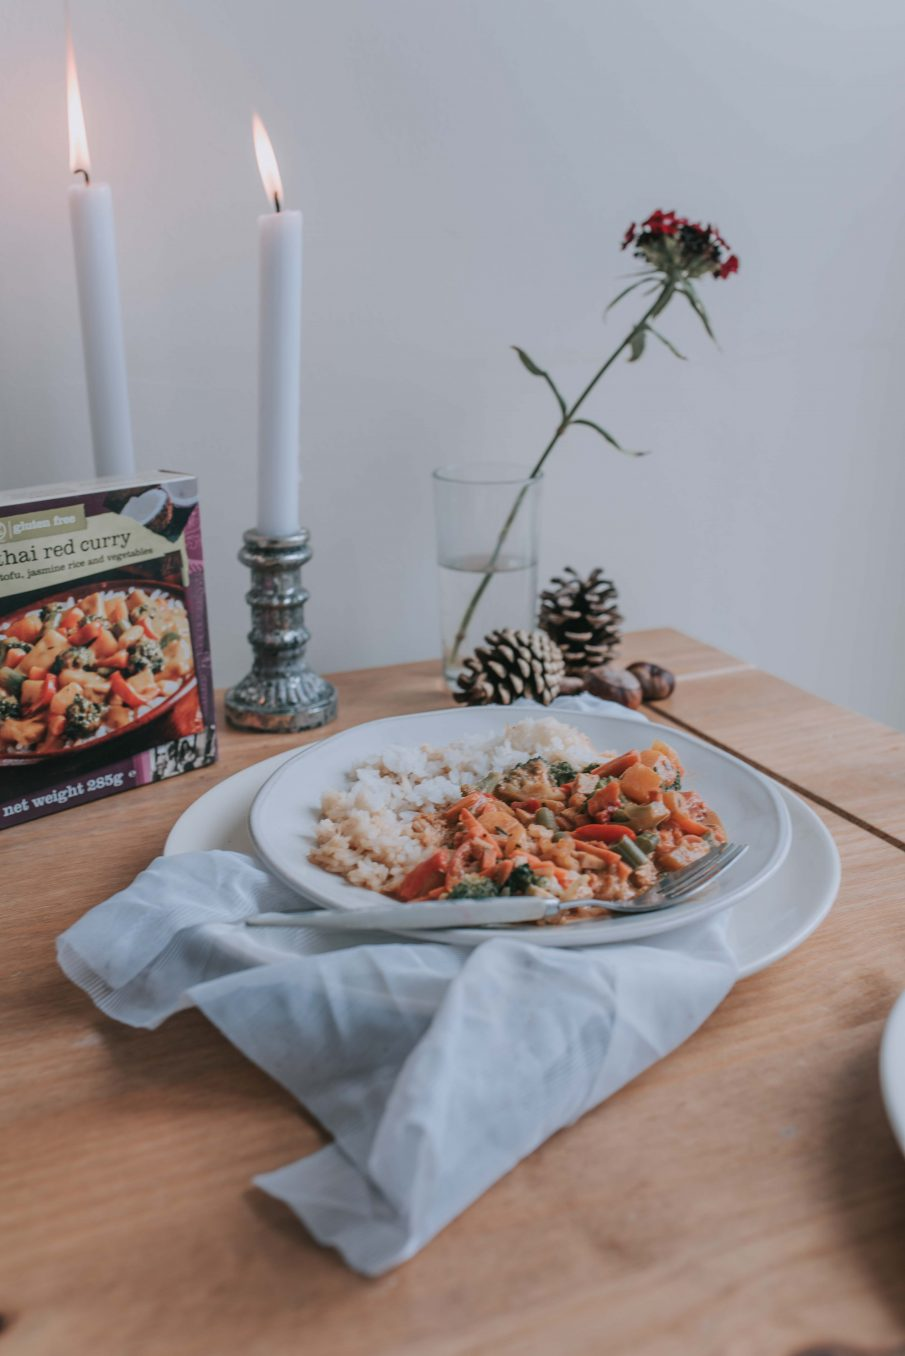 Garlic and Thyme Flatbreads Recipe with Amy's Kitchen Thai Red Curry Ready Meal